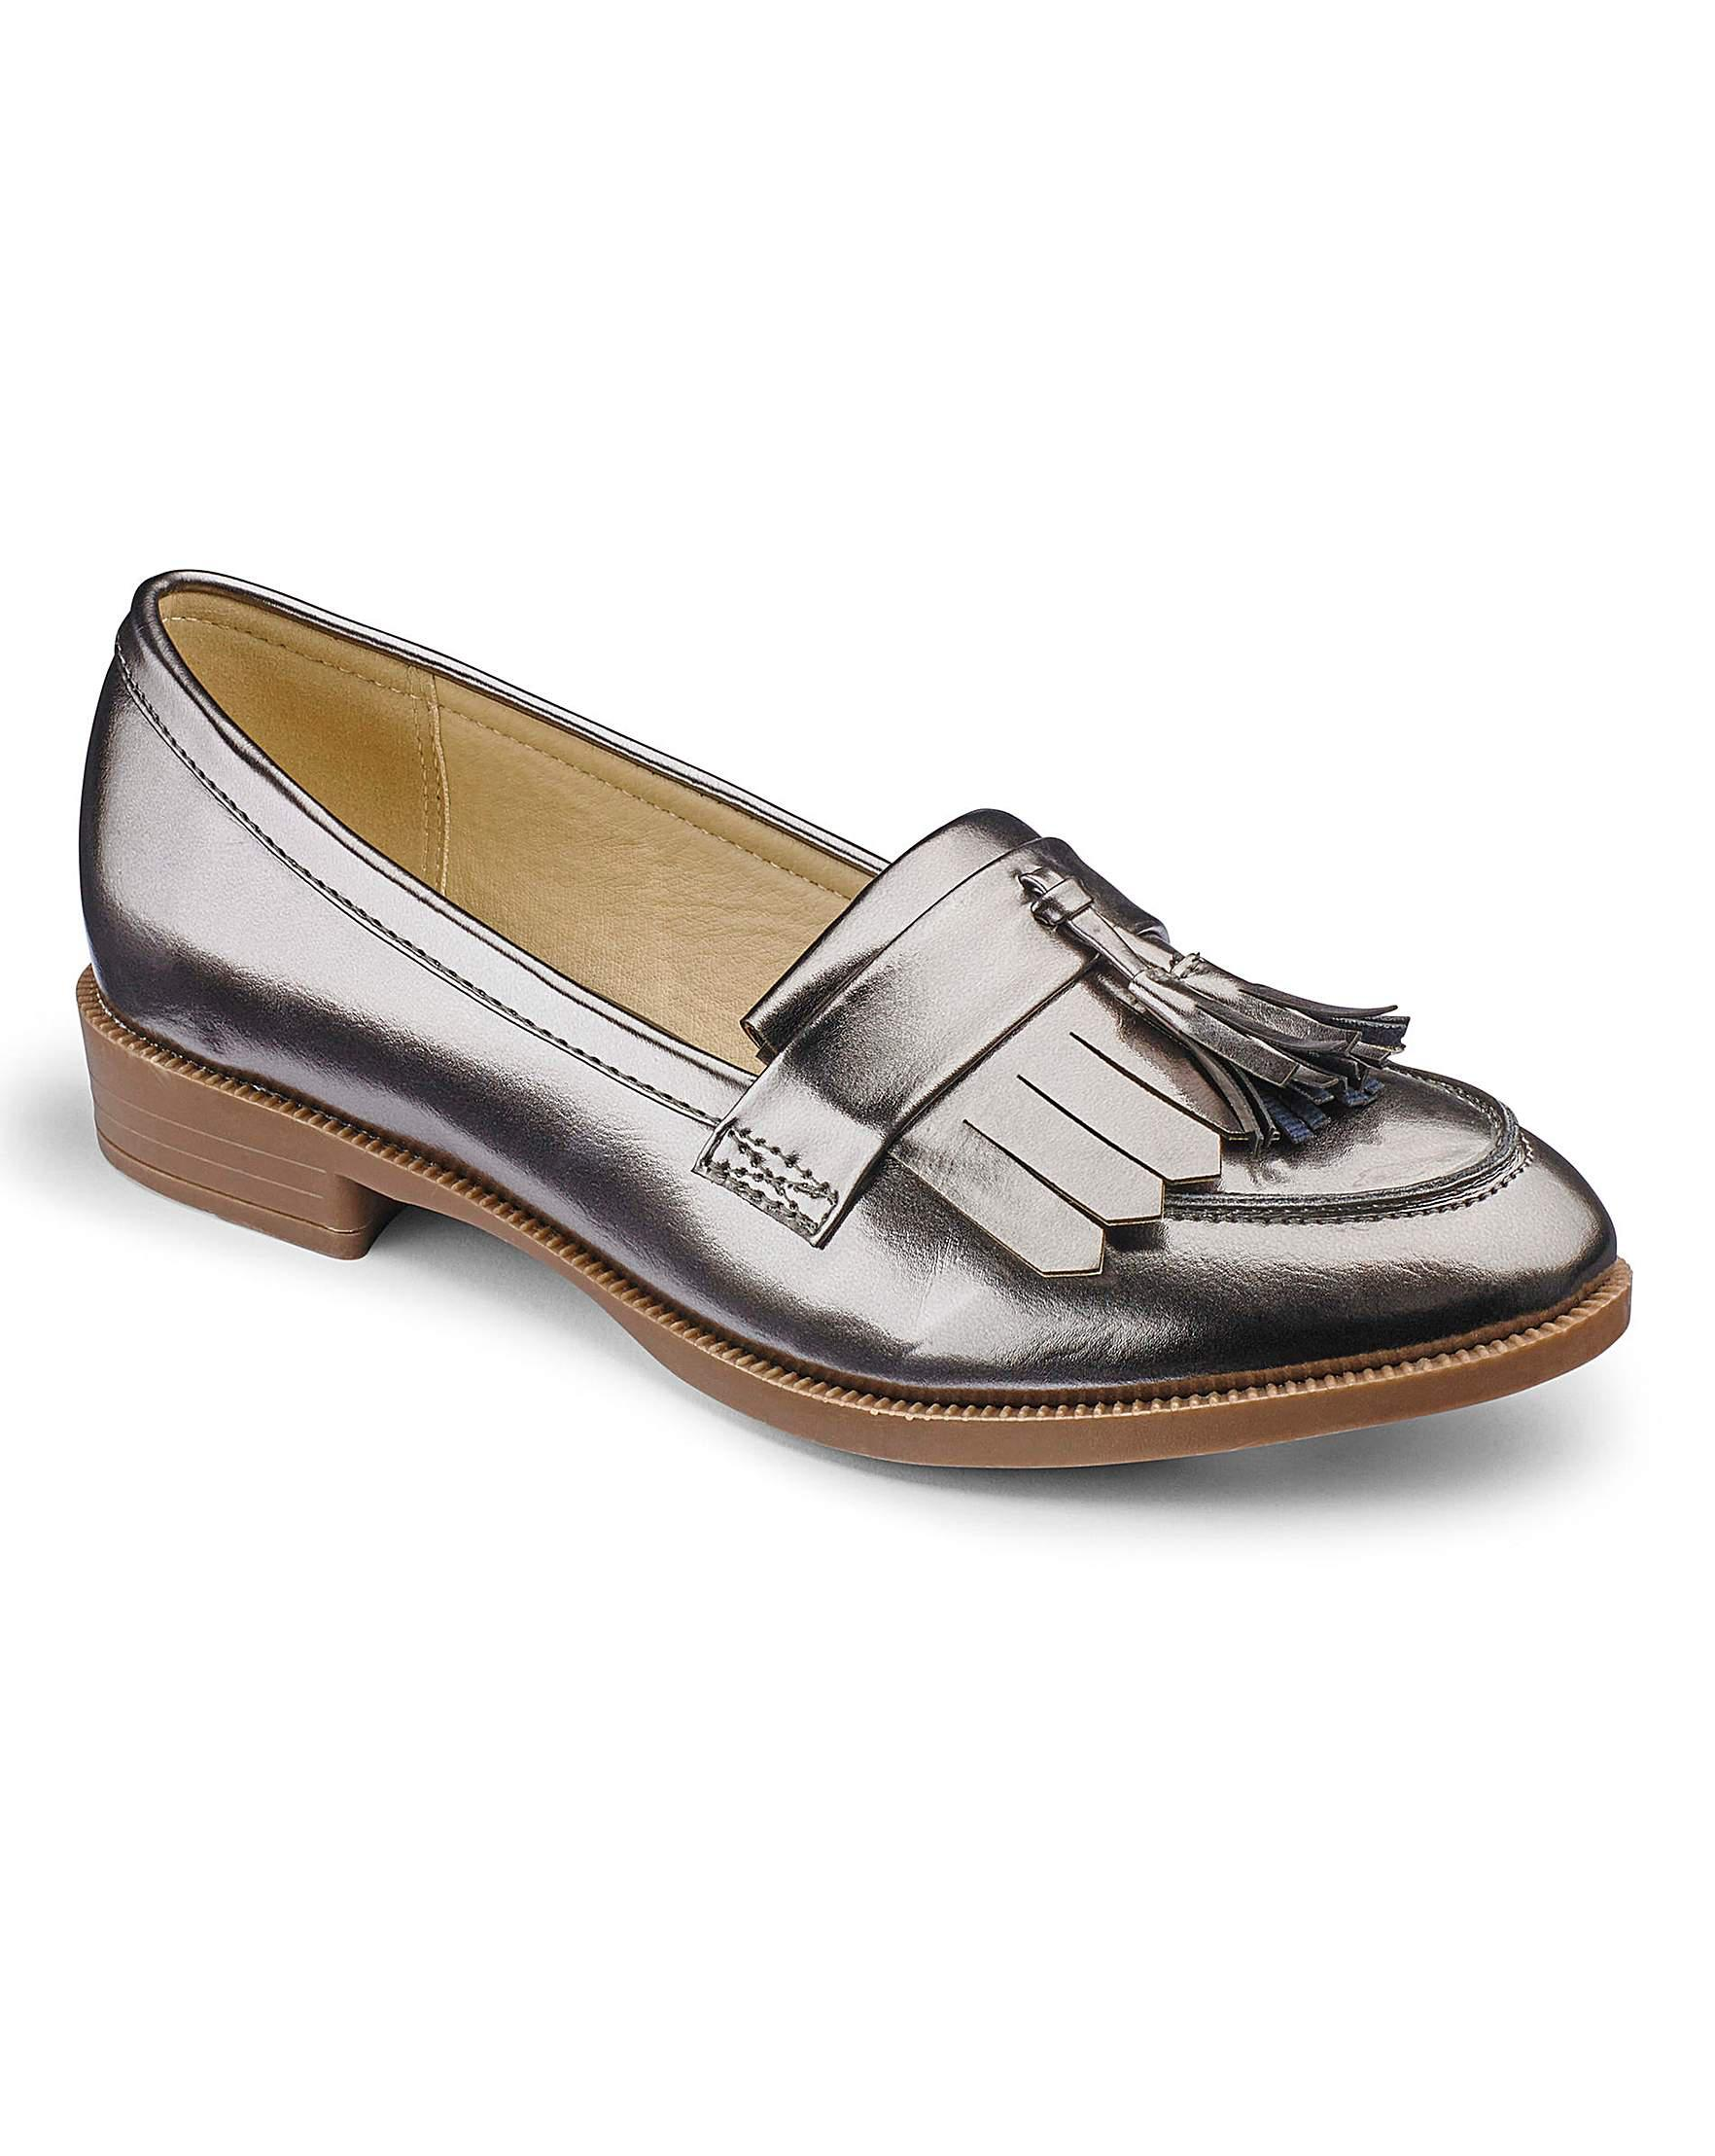 91d4aecb8b0 Sole Diva Fringe Loafers E Fit - Lyst